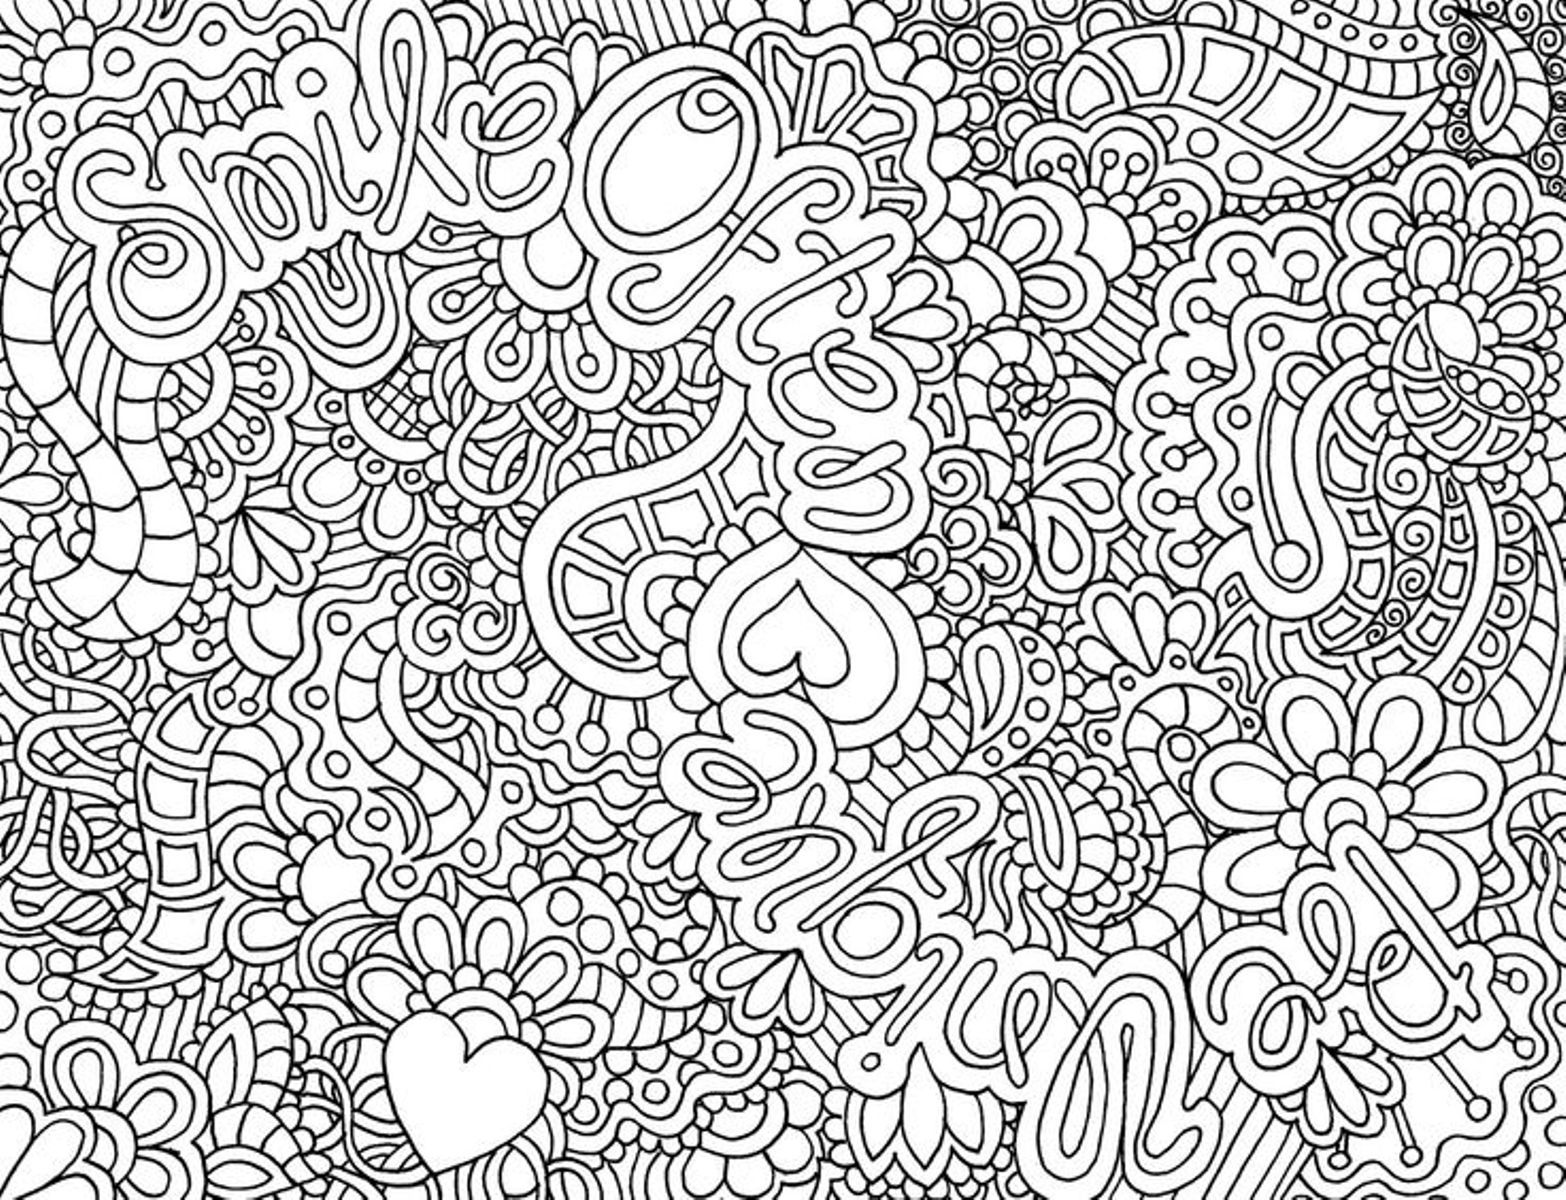 coloring pages of flowers for teenagers difficult only coloring pages - Coloring Books For Teens